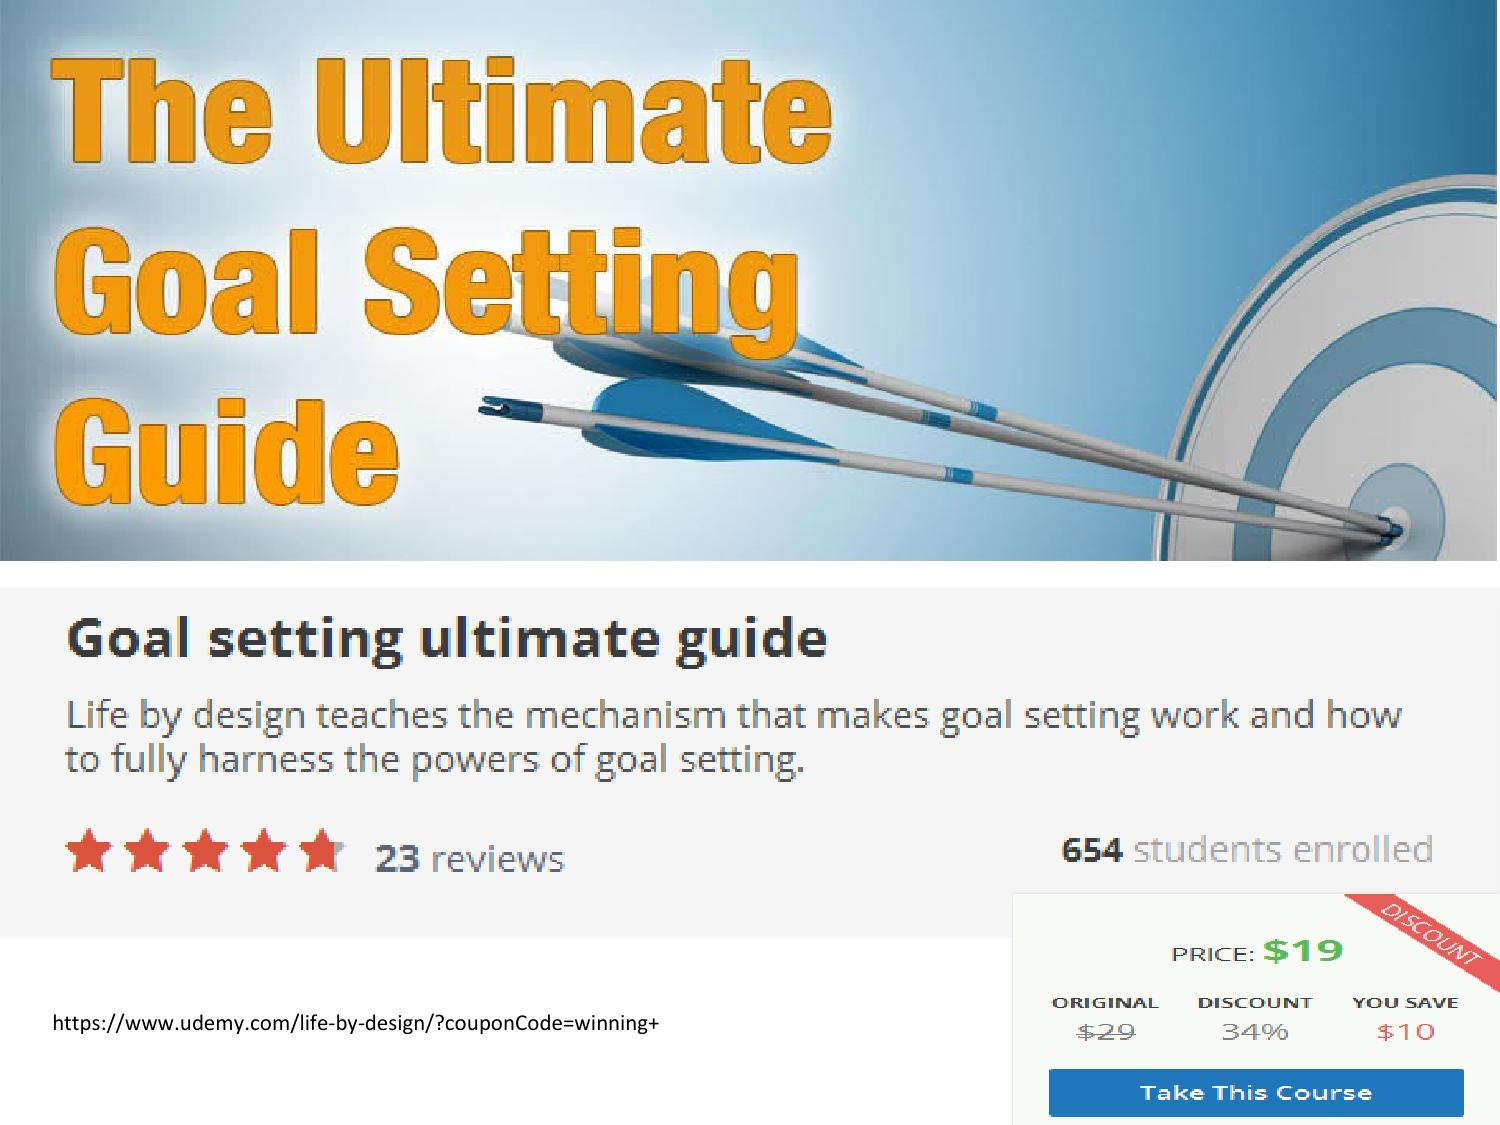 Goal setting ultimate guide take this course from udemy by Johnd Clark -  issuu